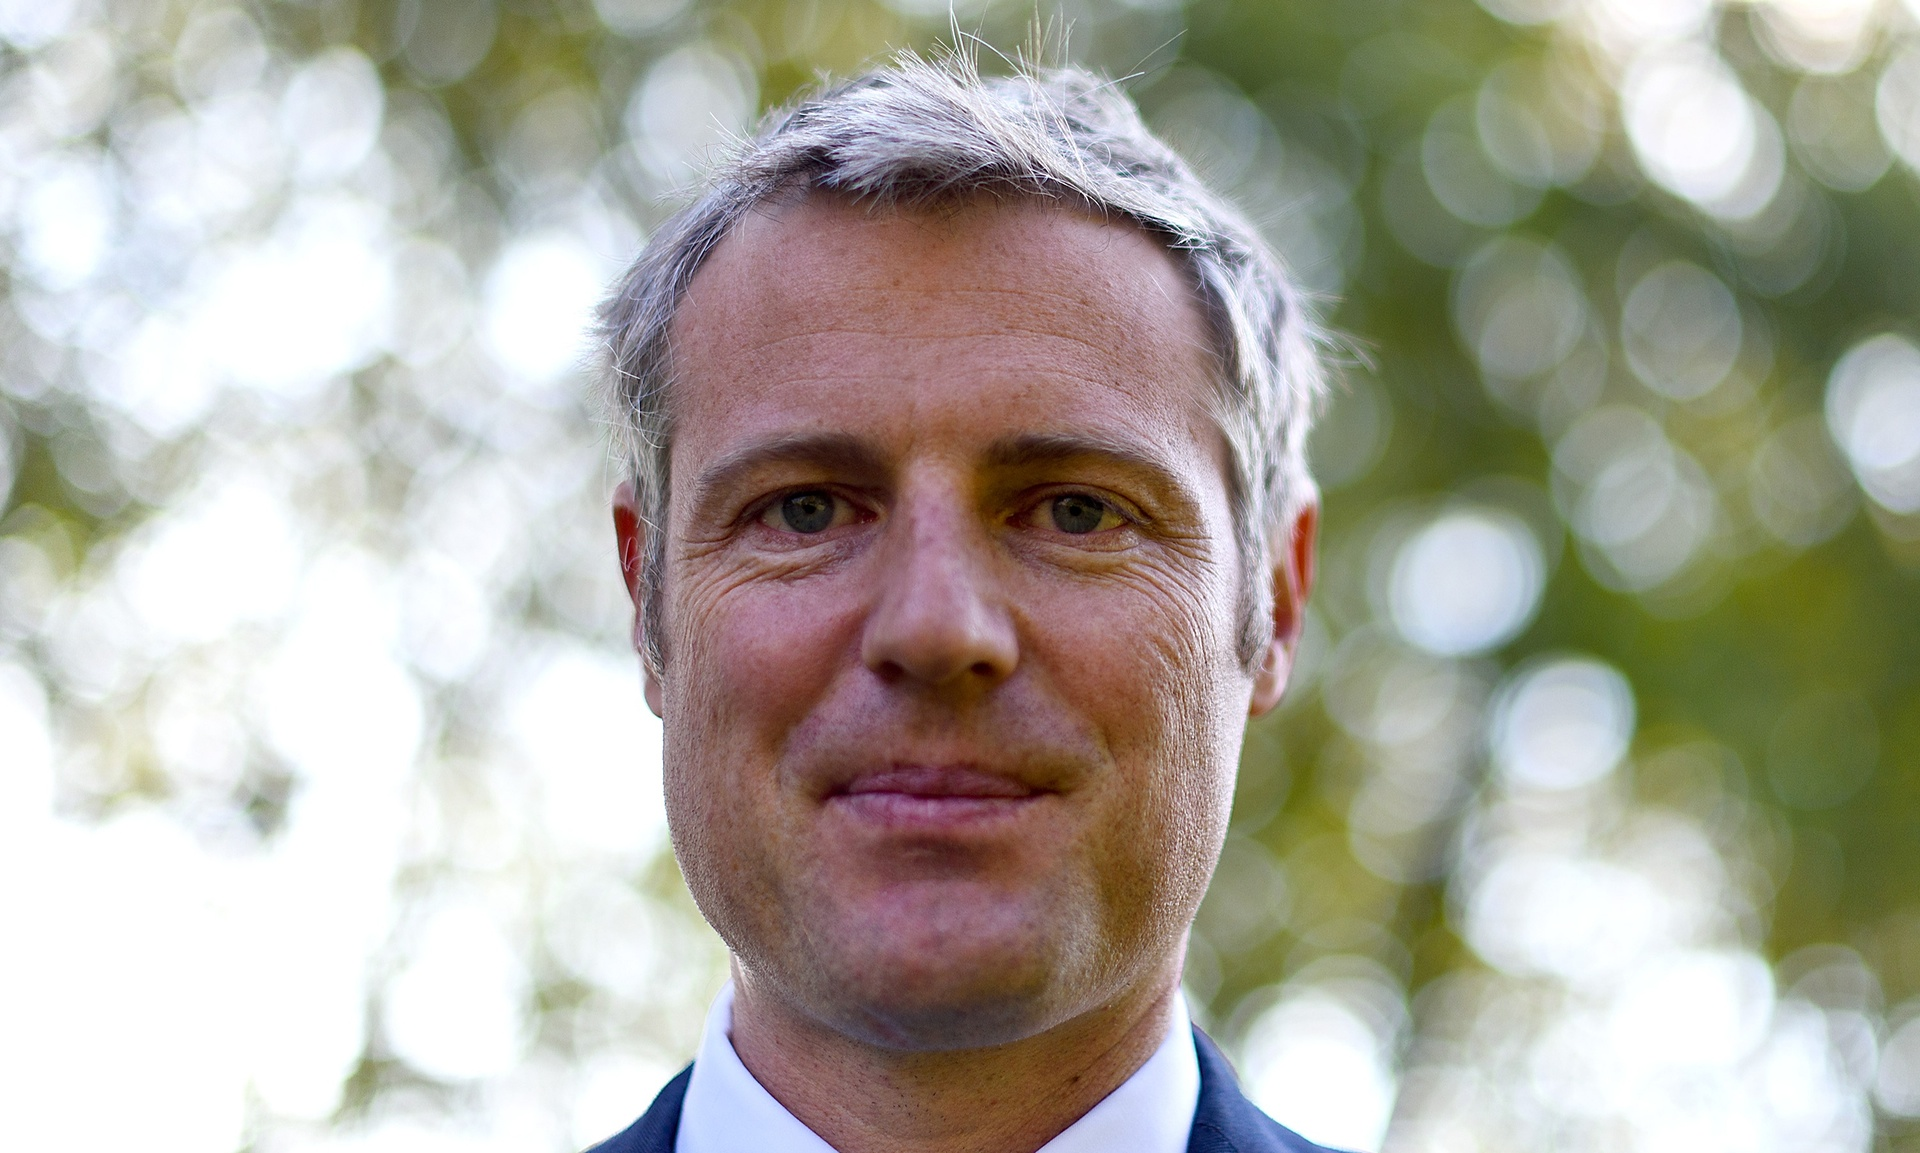 Ukip backs Zac Goldsmith in Richmond Park byelection